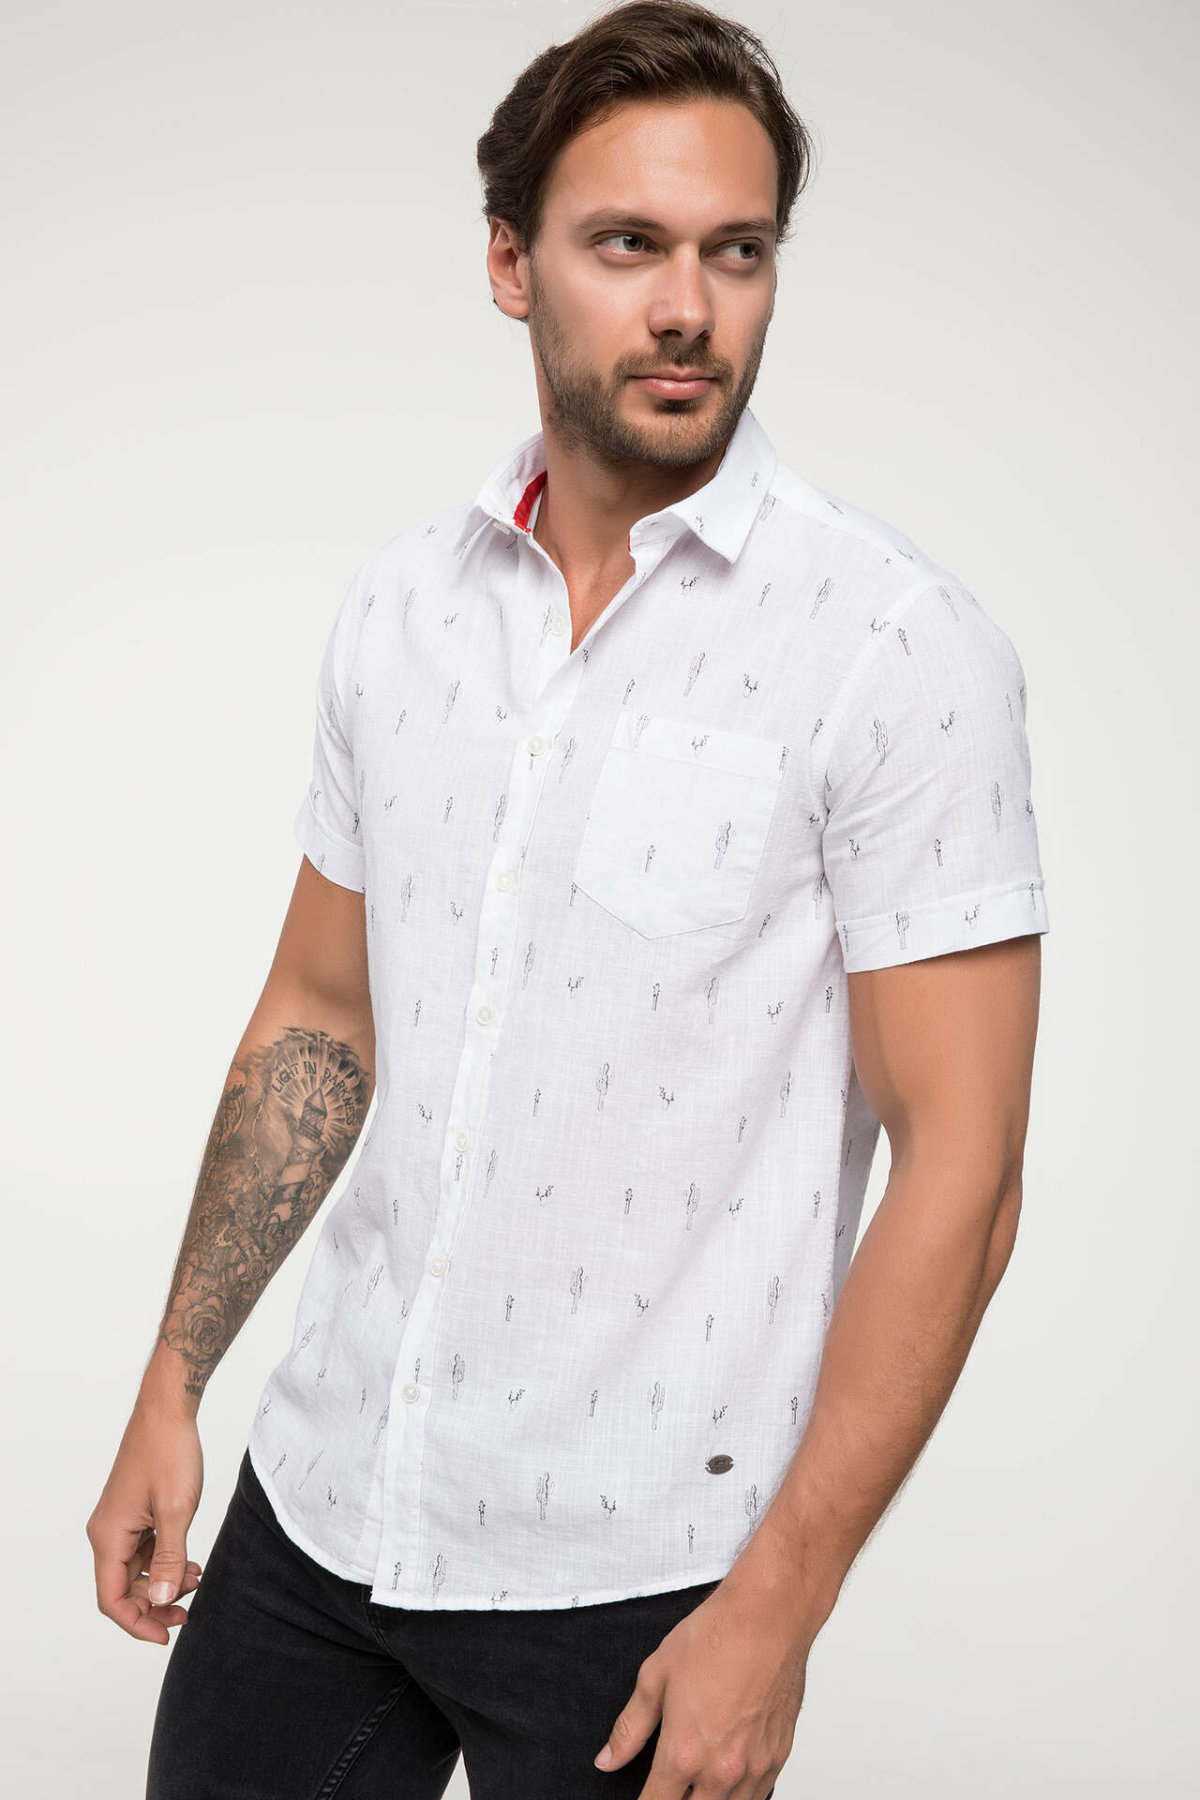 DeFacto New Man Short Sleeve Shirt Men's Fashion Print Pattern High Quality Tops Male Casual Comfort Shirts Summer - I4927AZ18SM